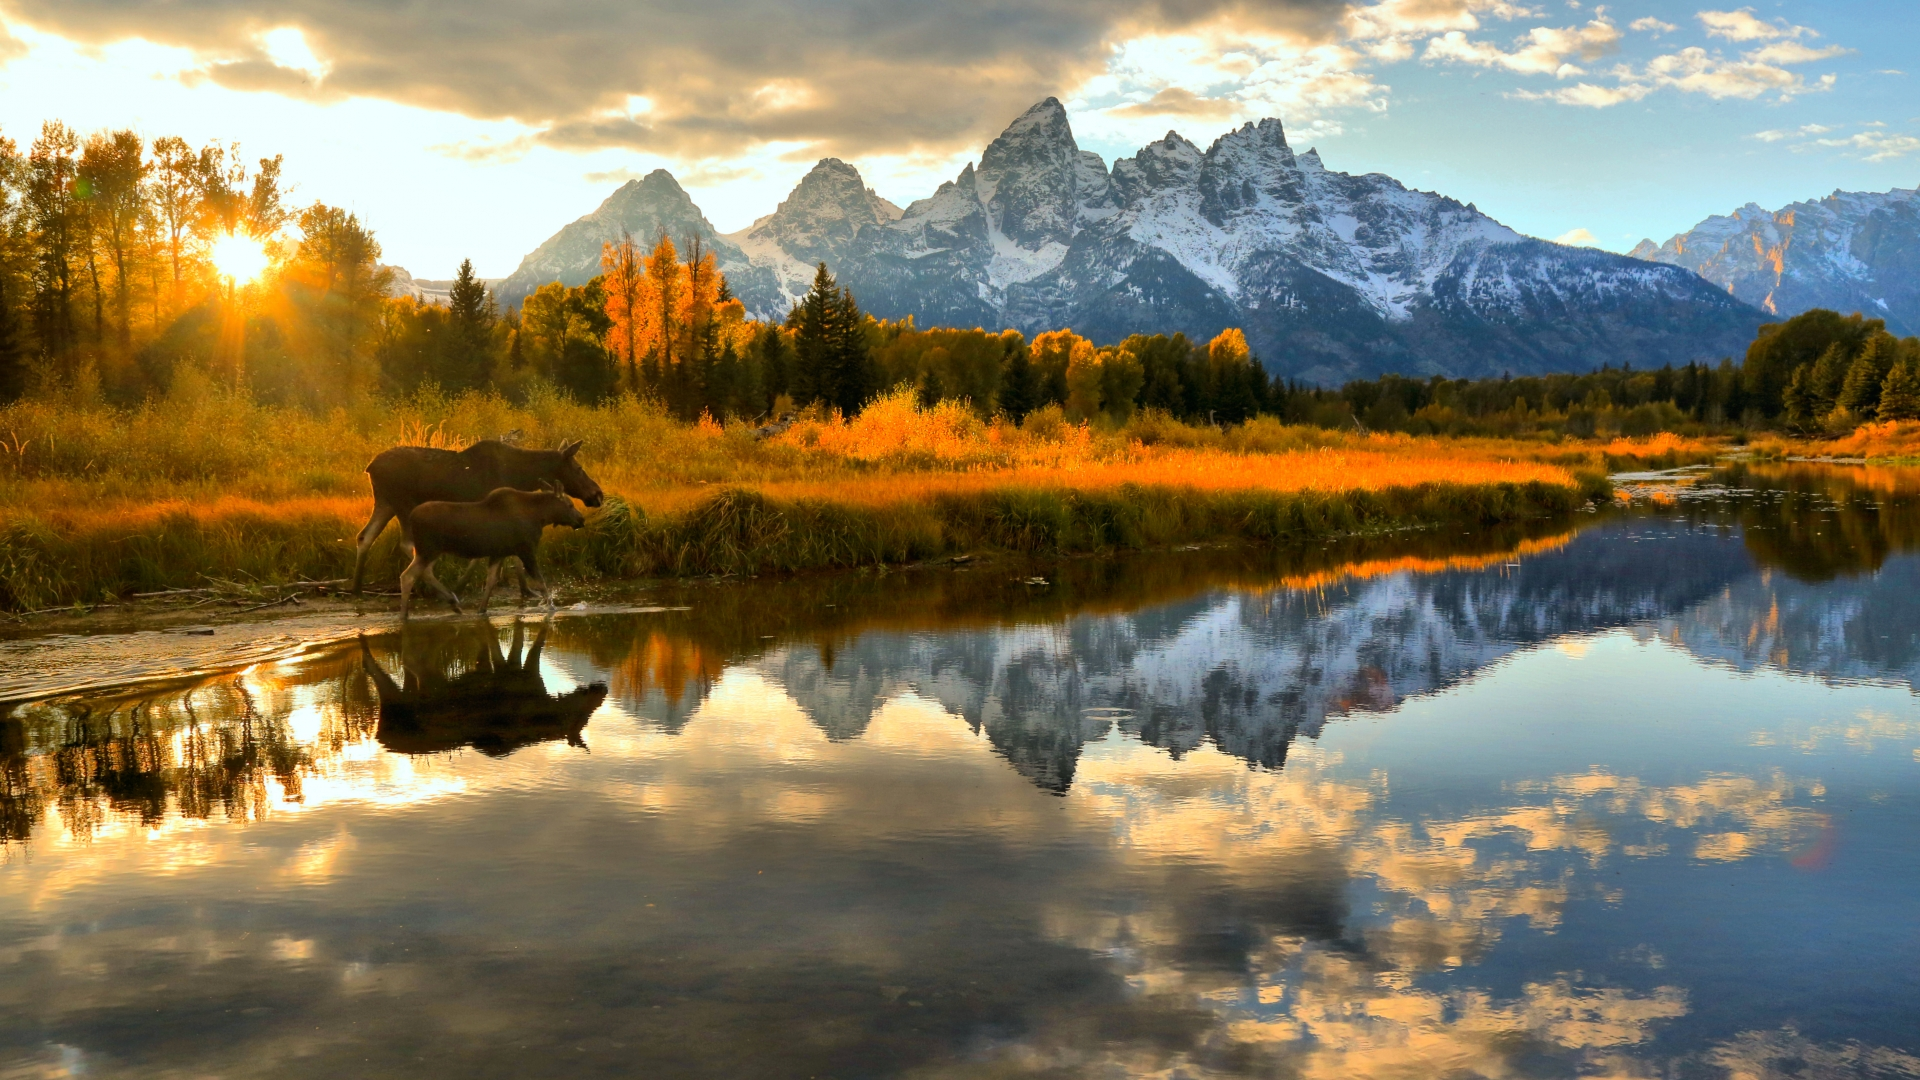 Grand Teton National Park contest image by Adam Jewell